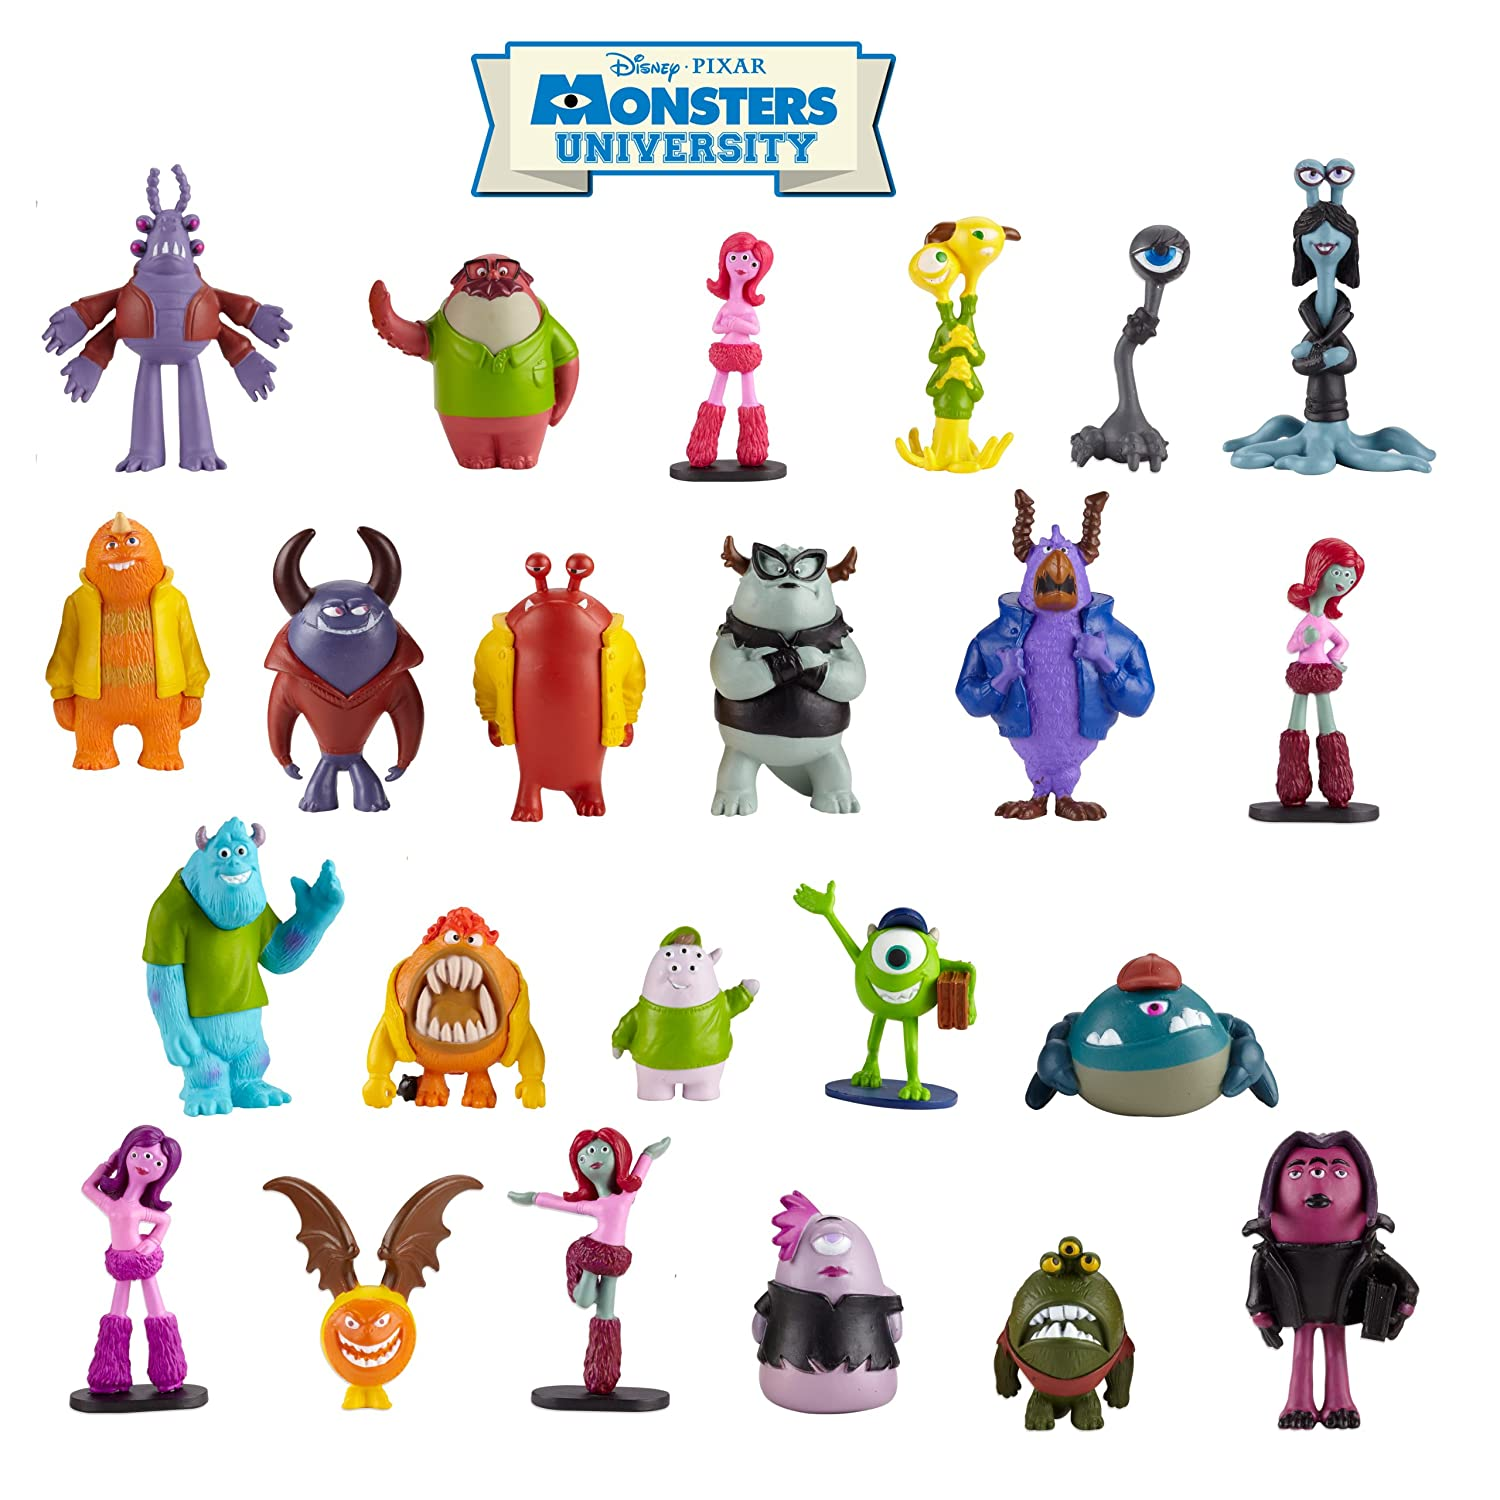 Monsters university single door with figure slime amazon monsters university single door with figure slime amazon toys games voltagebd Gallery